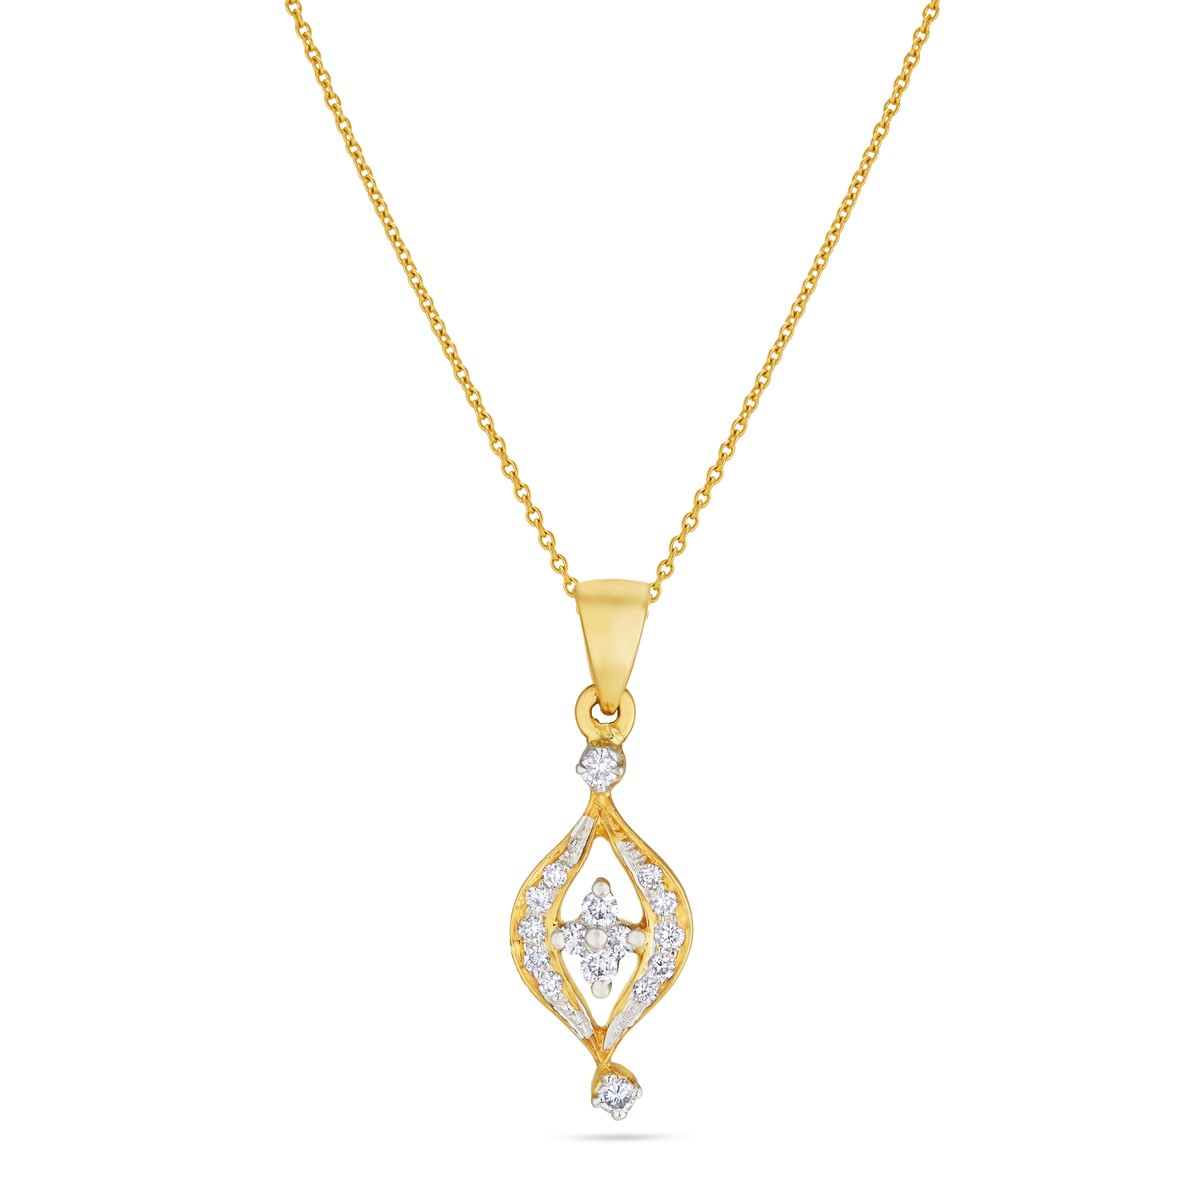 jewellery models design designs necklace gold simple